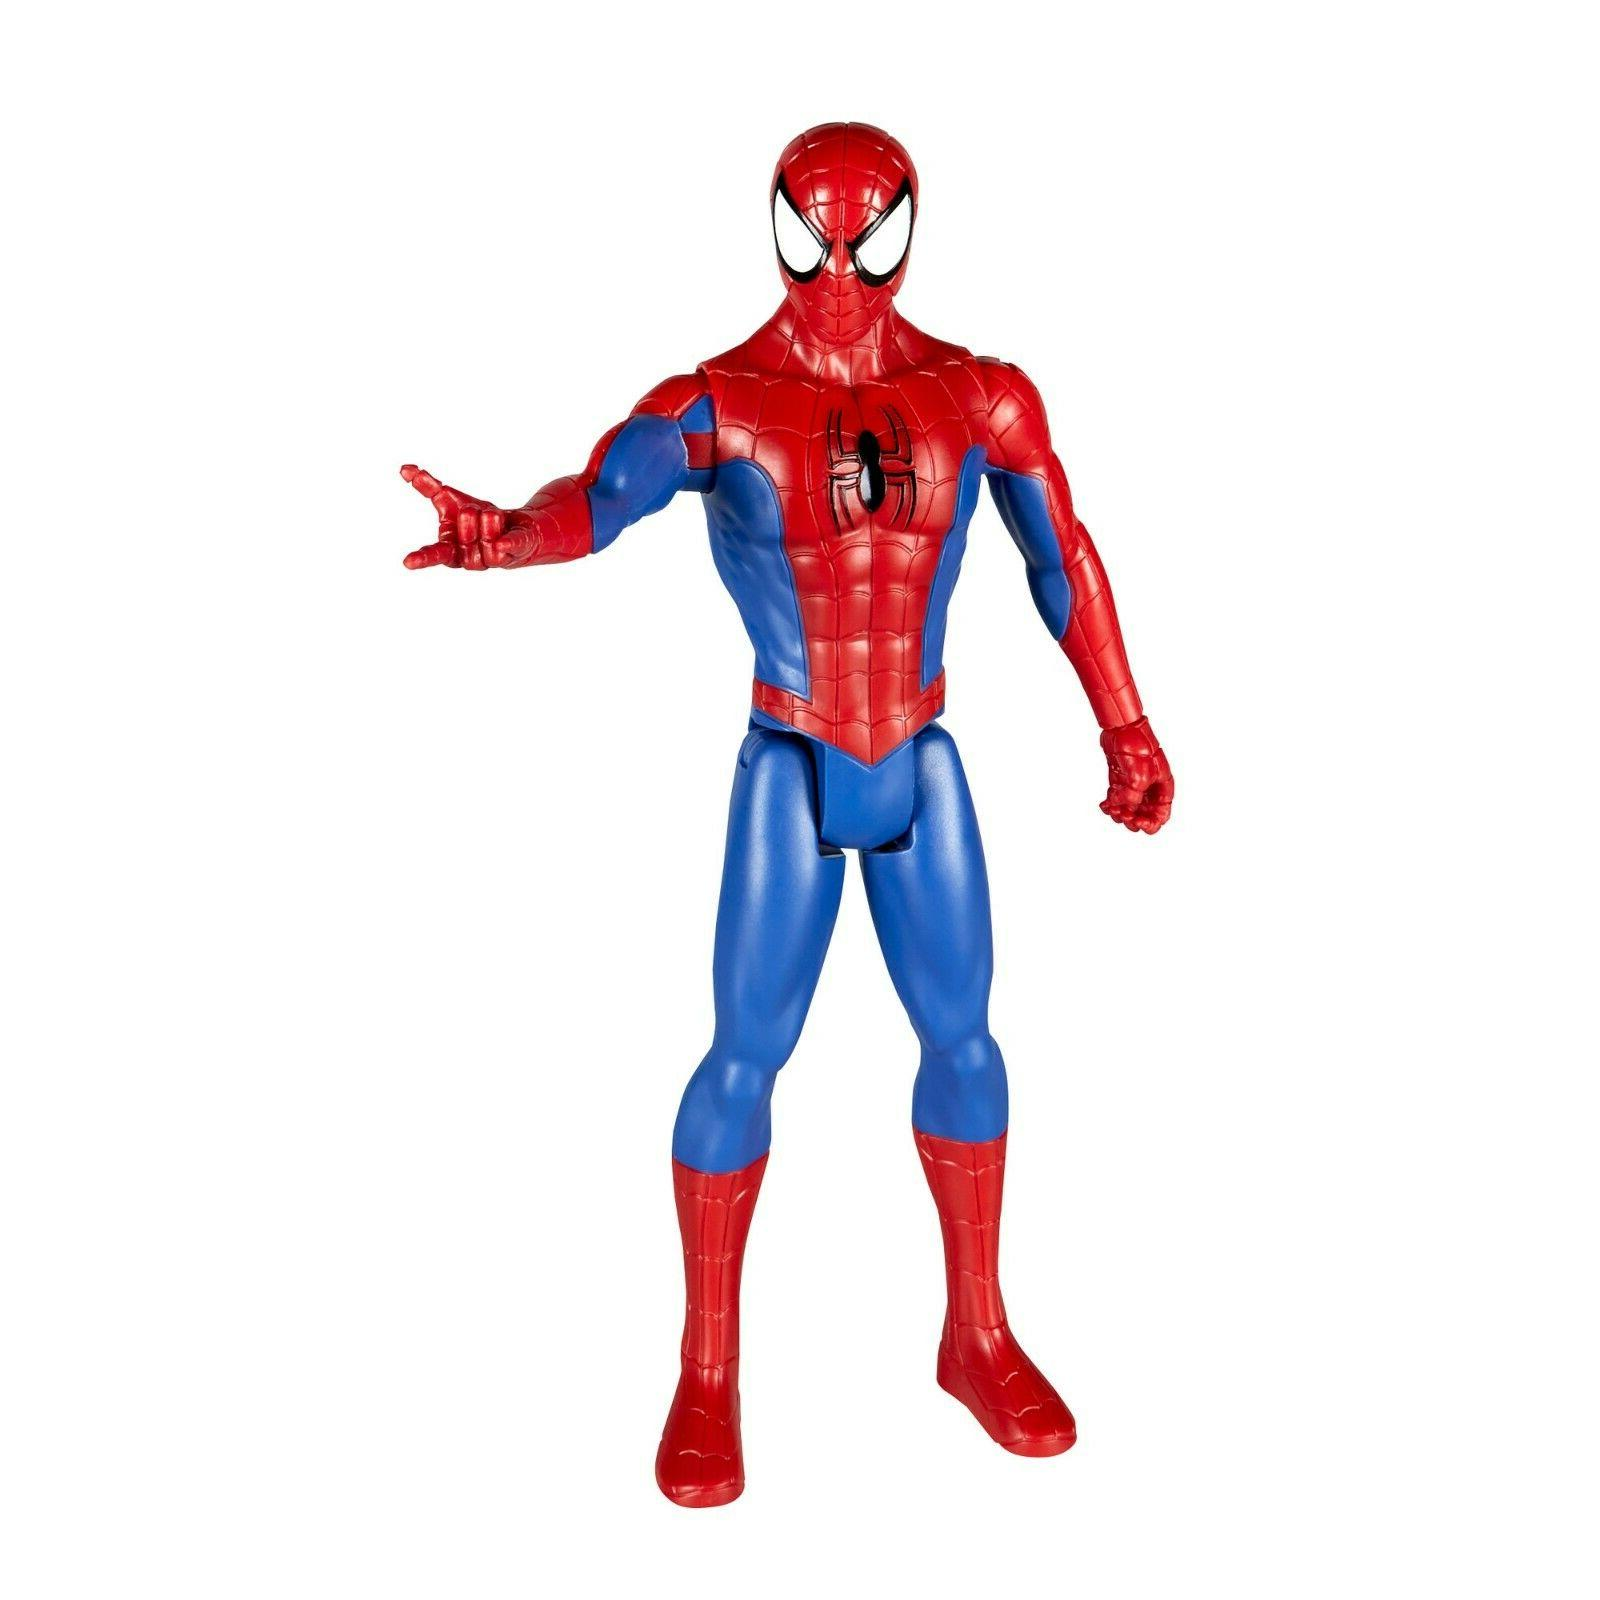 Spider-Man Titan Hero Figure with Power Fx Port E0649